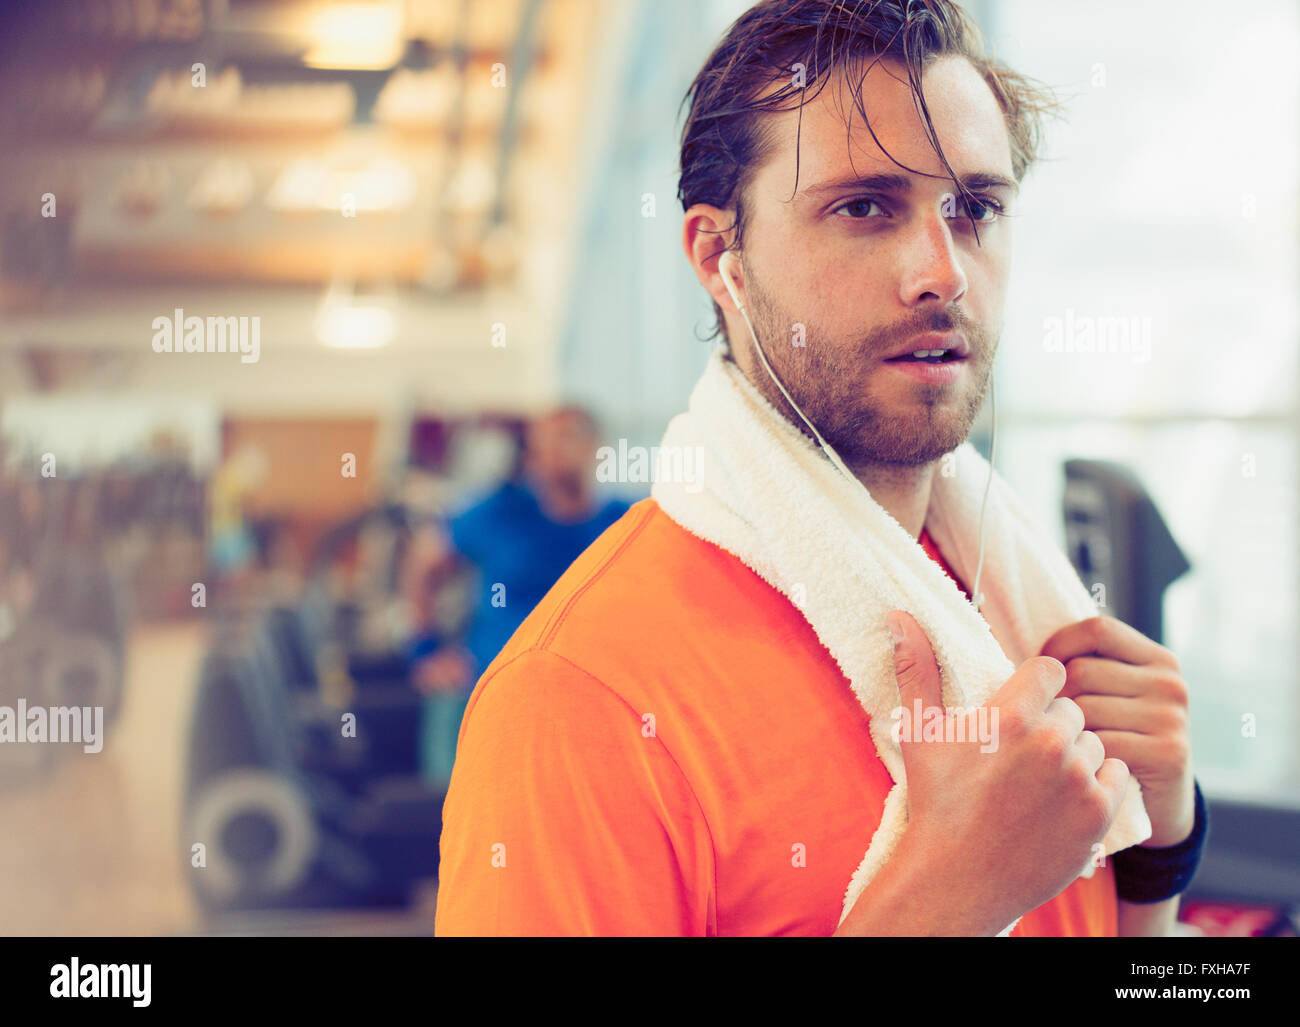 Sweating man with towel and headphones resting in gym - Stock Image